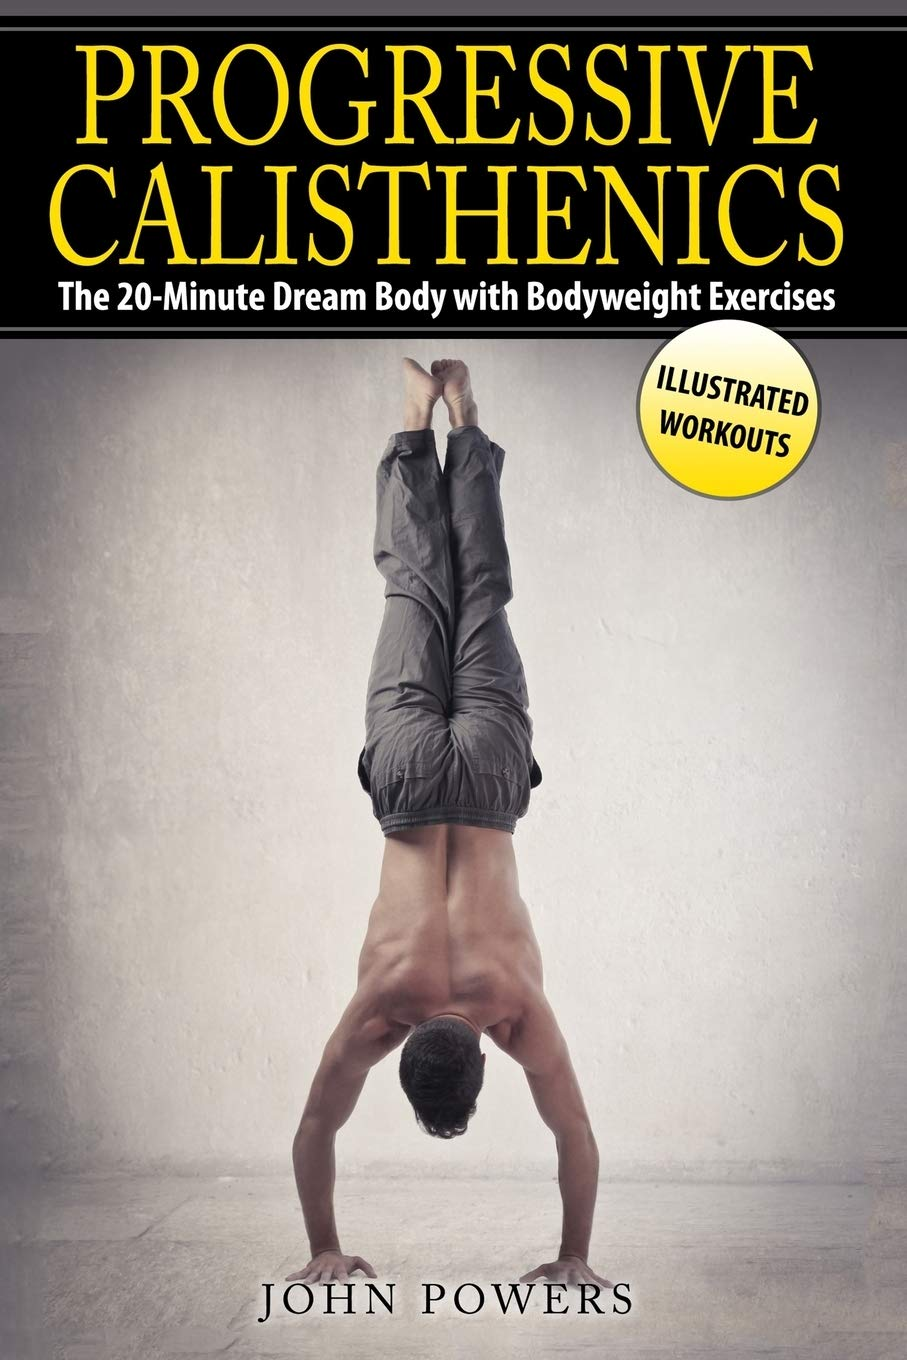 Progressive Calisthenics The 20 Minute Dream Body With Bodyweight Exercises Bodyweight Exercises In Black White Powers John 9781520161358 Amazon Com Books